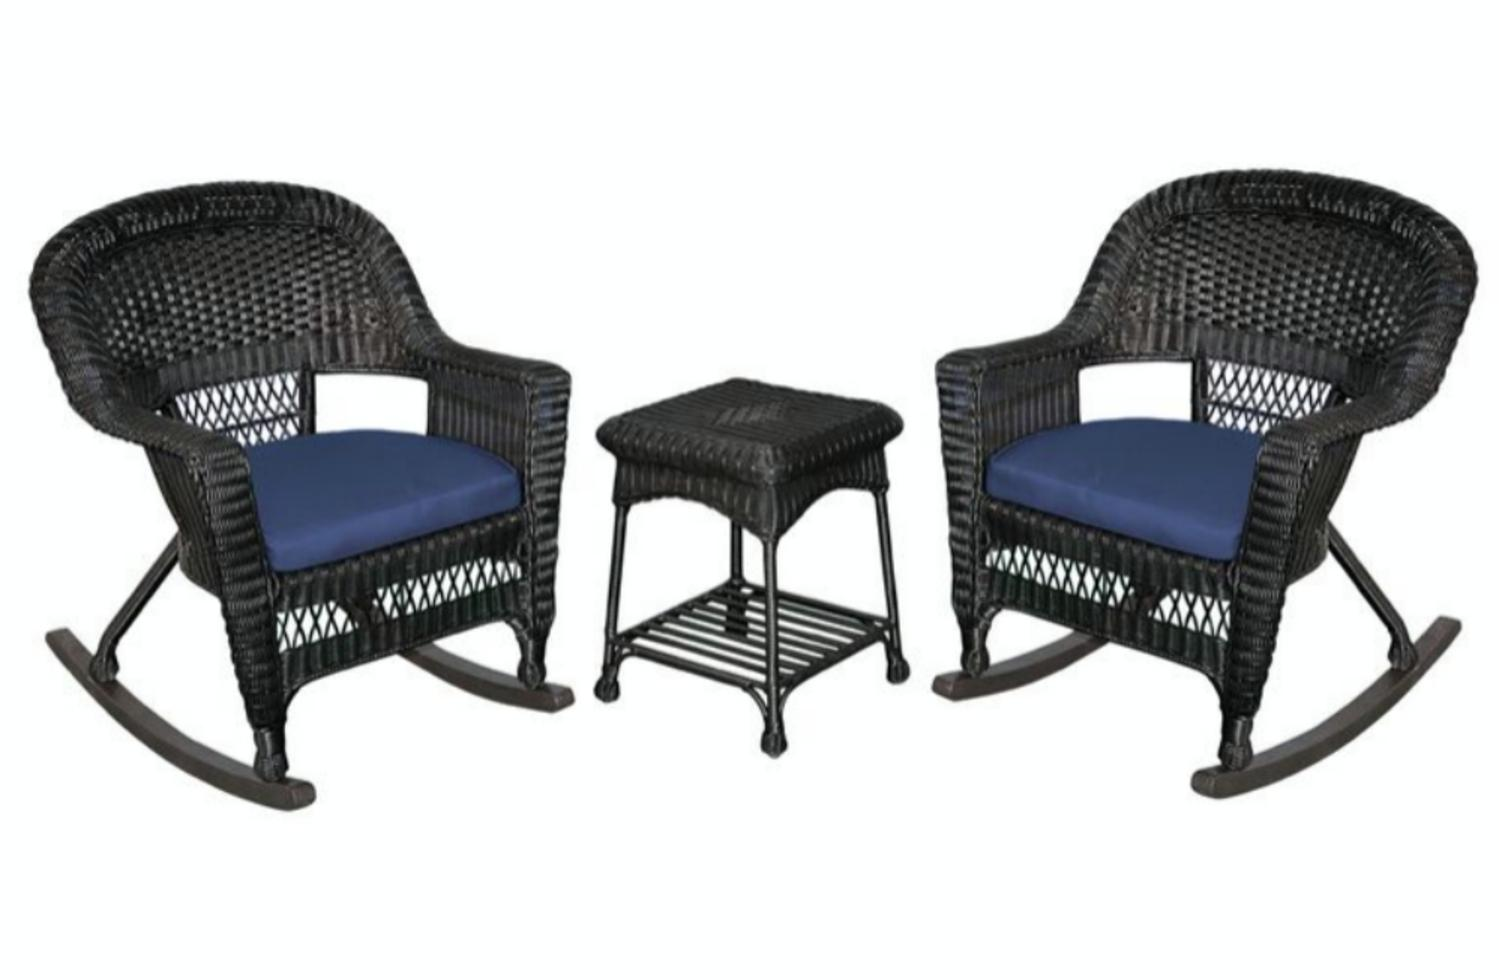 Black Wicker Rocking Chairs 3 Piece Ariel White Resin Wicker Patio Rocker Chairs And Table Furniture Set